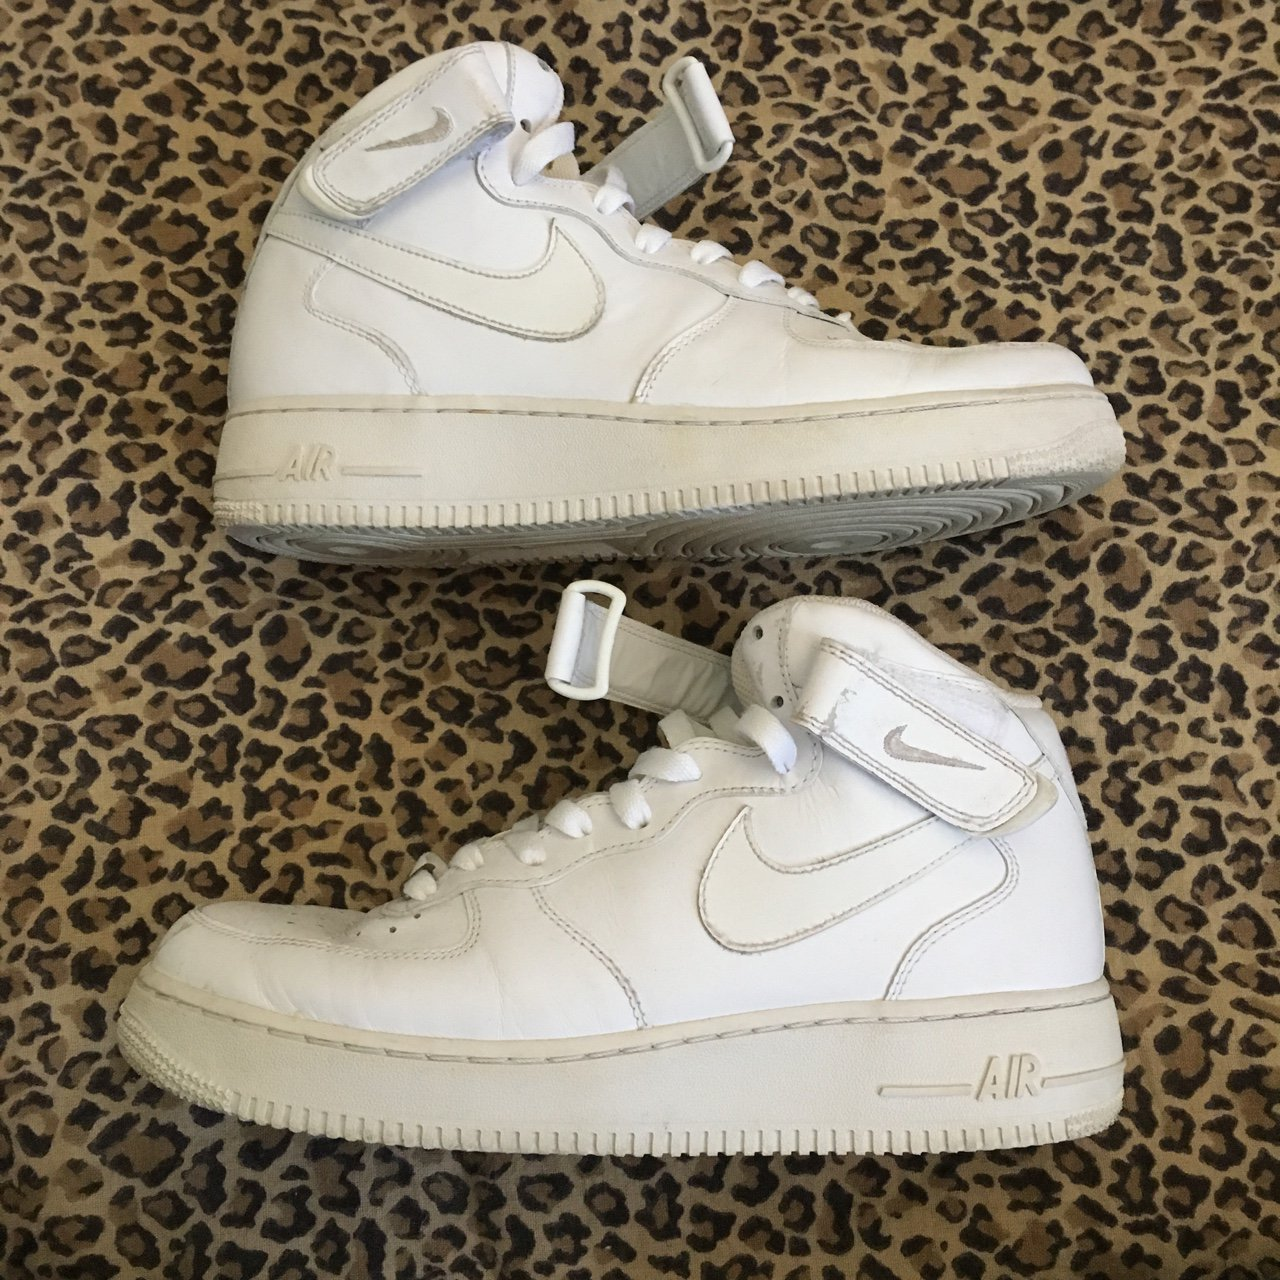 👣 Nike White Air Force 1 High-tops in Size Women s 10 or 9 - Depop 391b1c381895